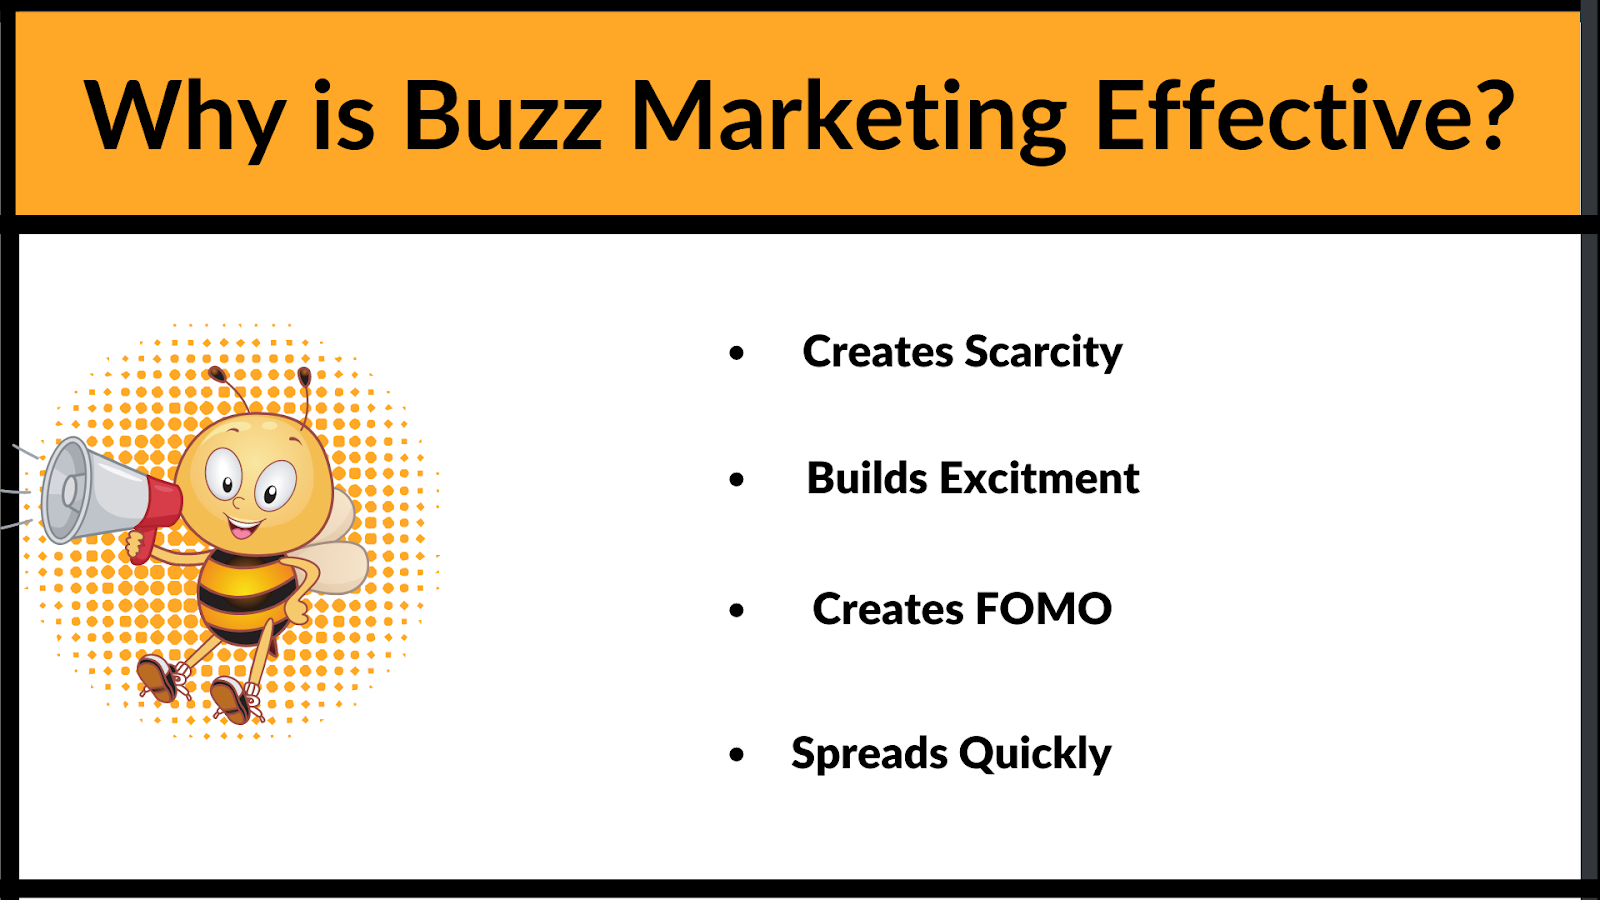 Why is Buzz Mareketing effective? it creates scarcity, buids excitment, creates FOMO and spreads quickly because of it.